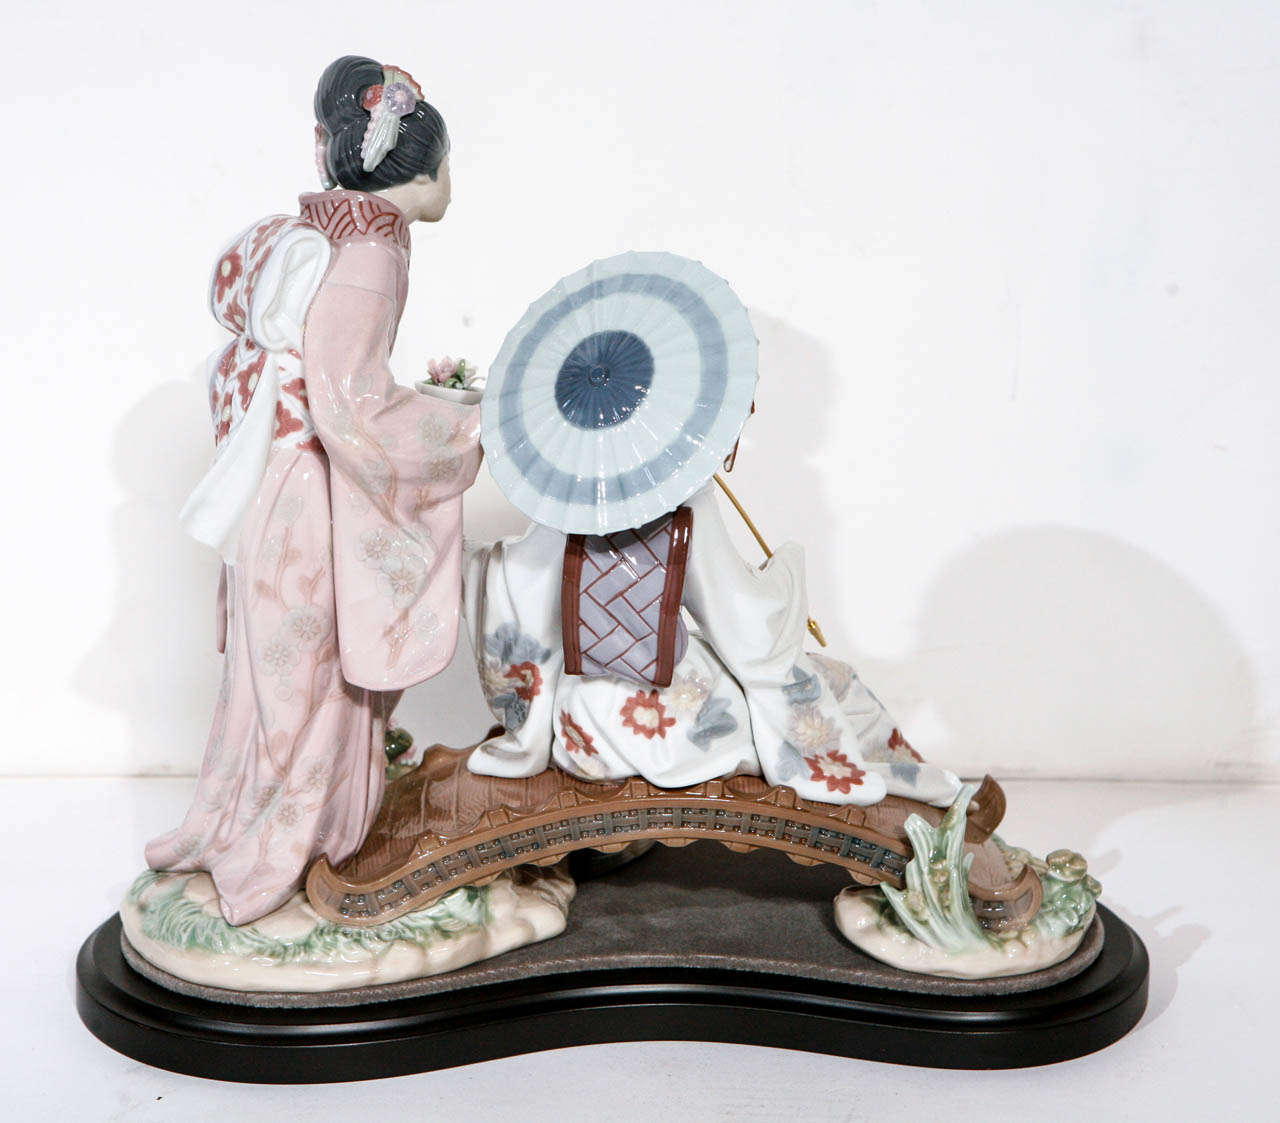 Charming Lladro Japanese Ladies Figurine For Sale At 1stdibs